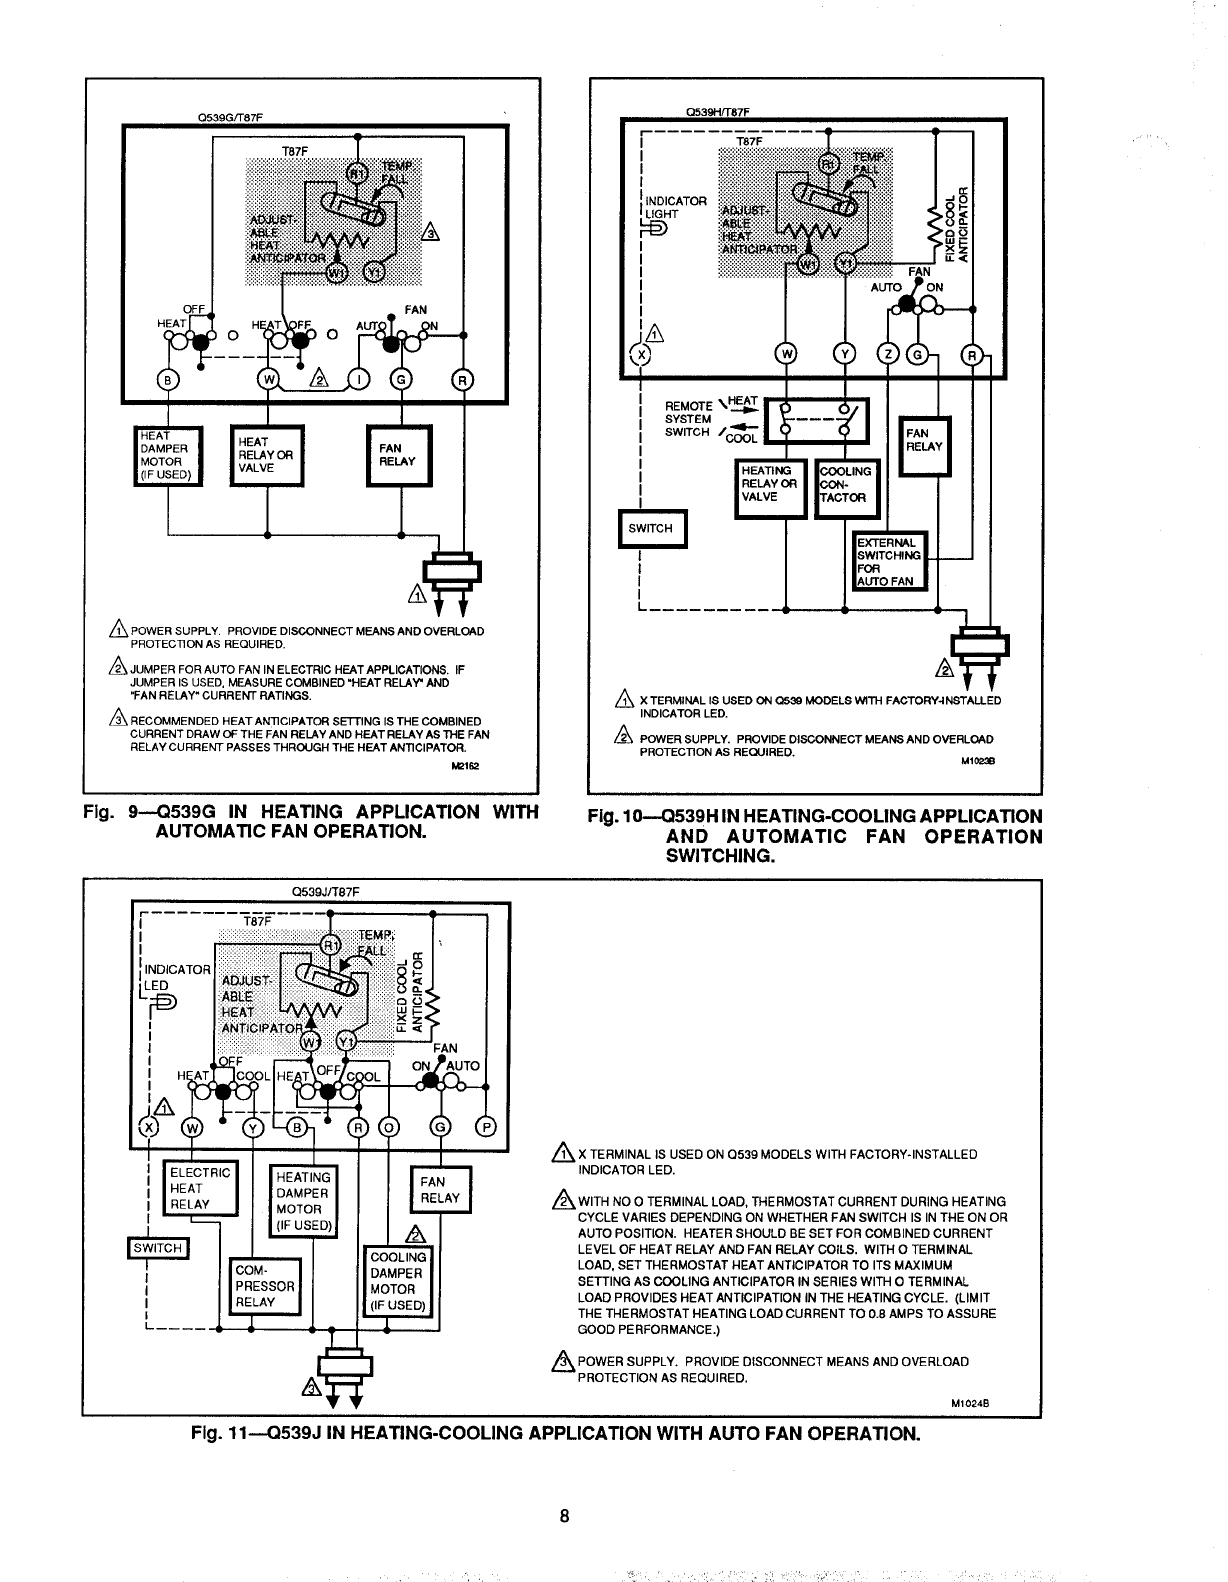 Page 8 of Honeywell Thermostat Q539A User Guide